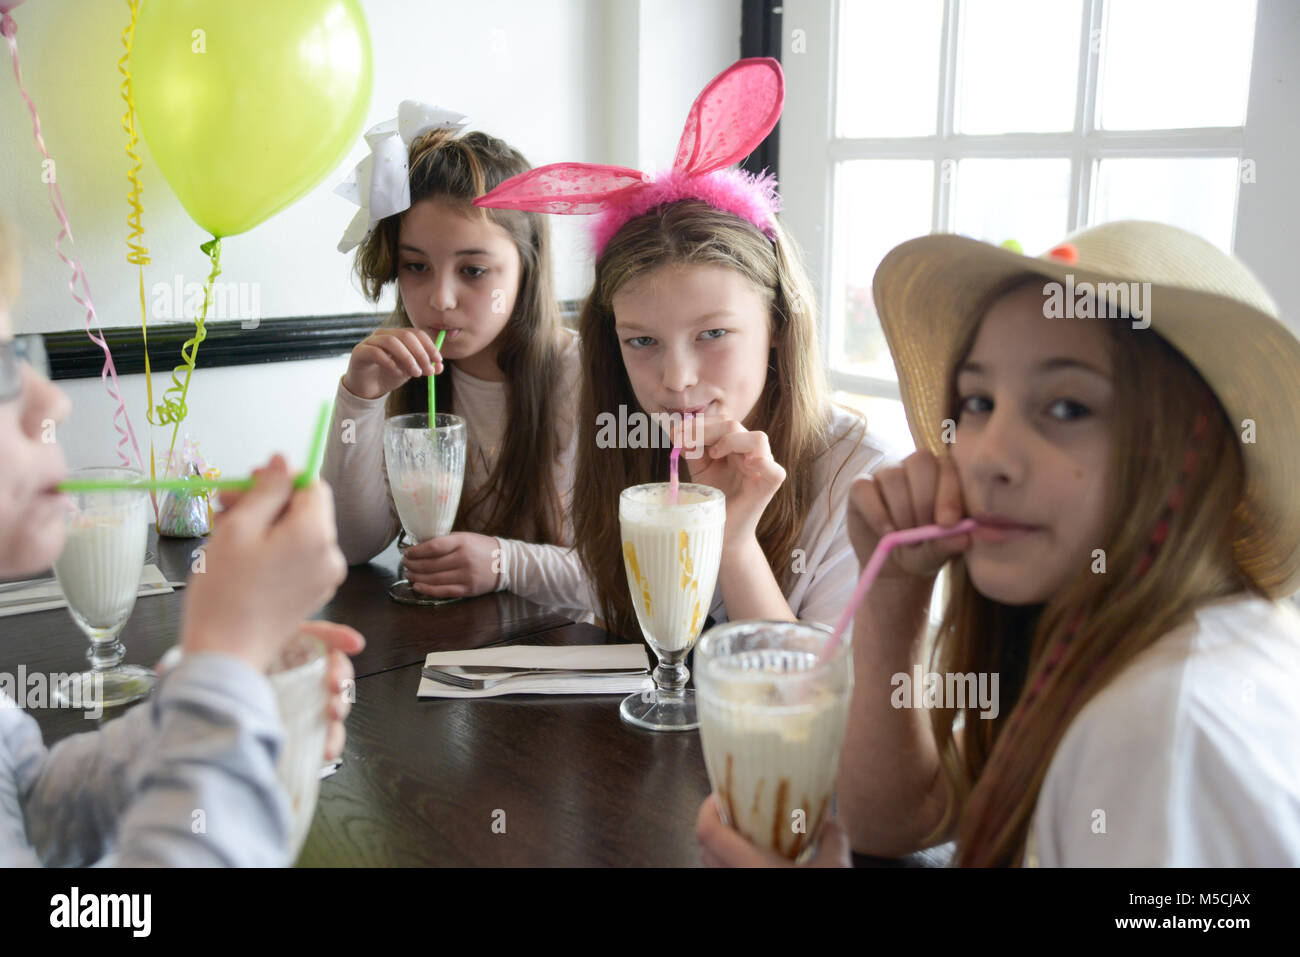 Three young children are sitting at a party table eating fried food and drinking milkshakes- there are balloons Stock Photo